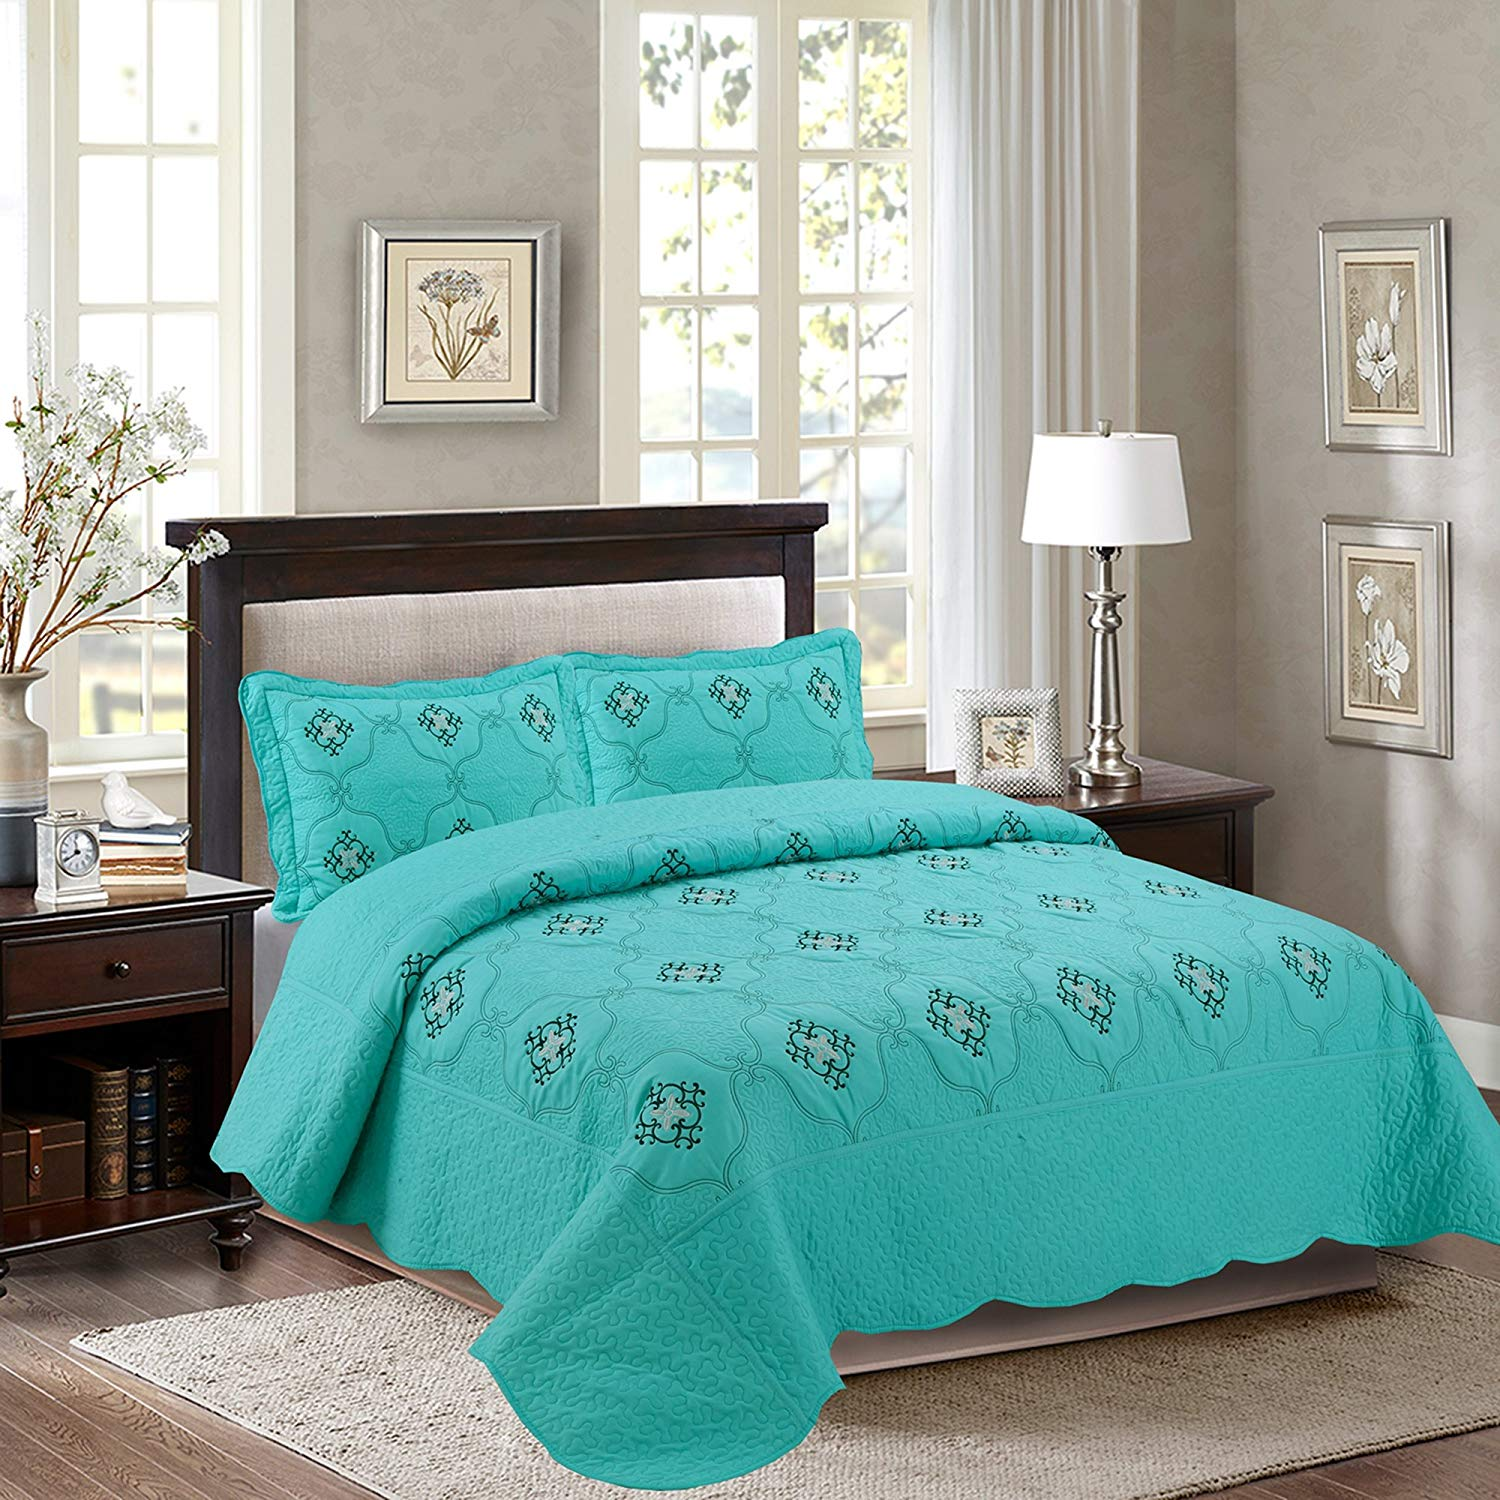 Quilted Embrodiery Bedspread Bed Coverlets Covers Set Taupe Burgundy Aqua Blue